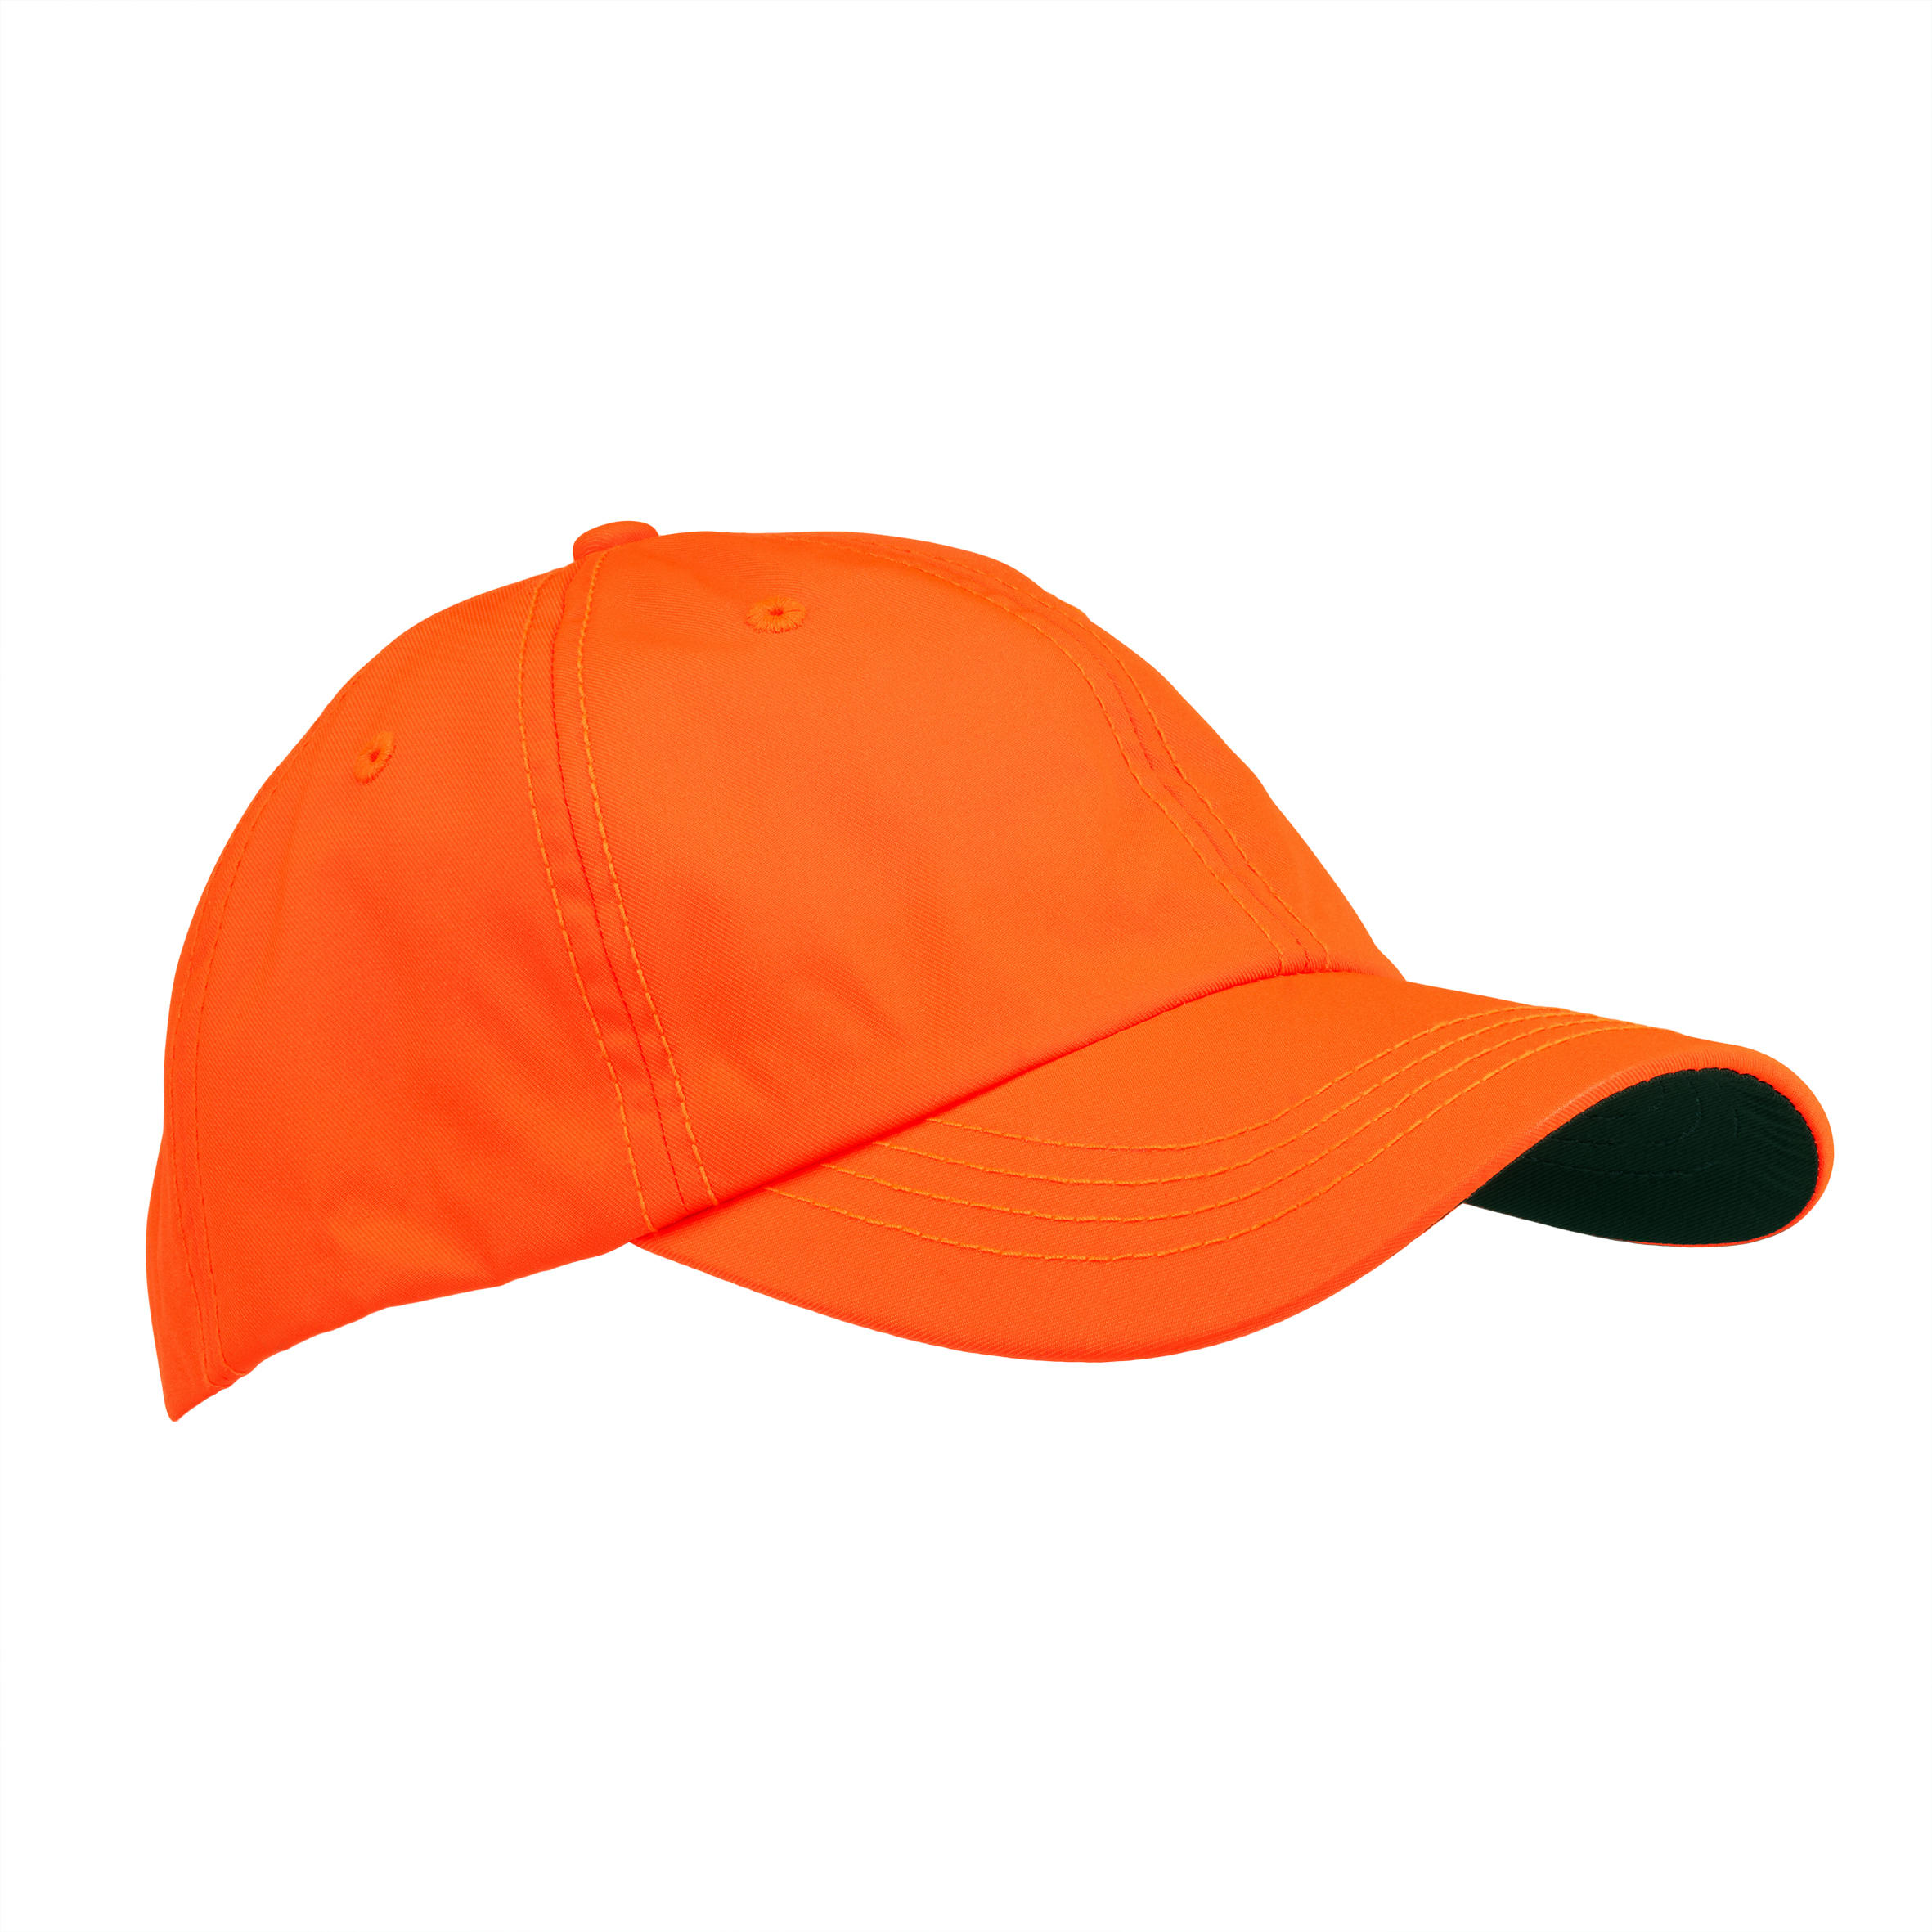 Casquette chasse fluo 100